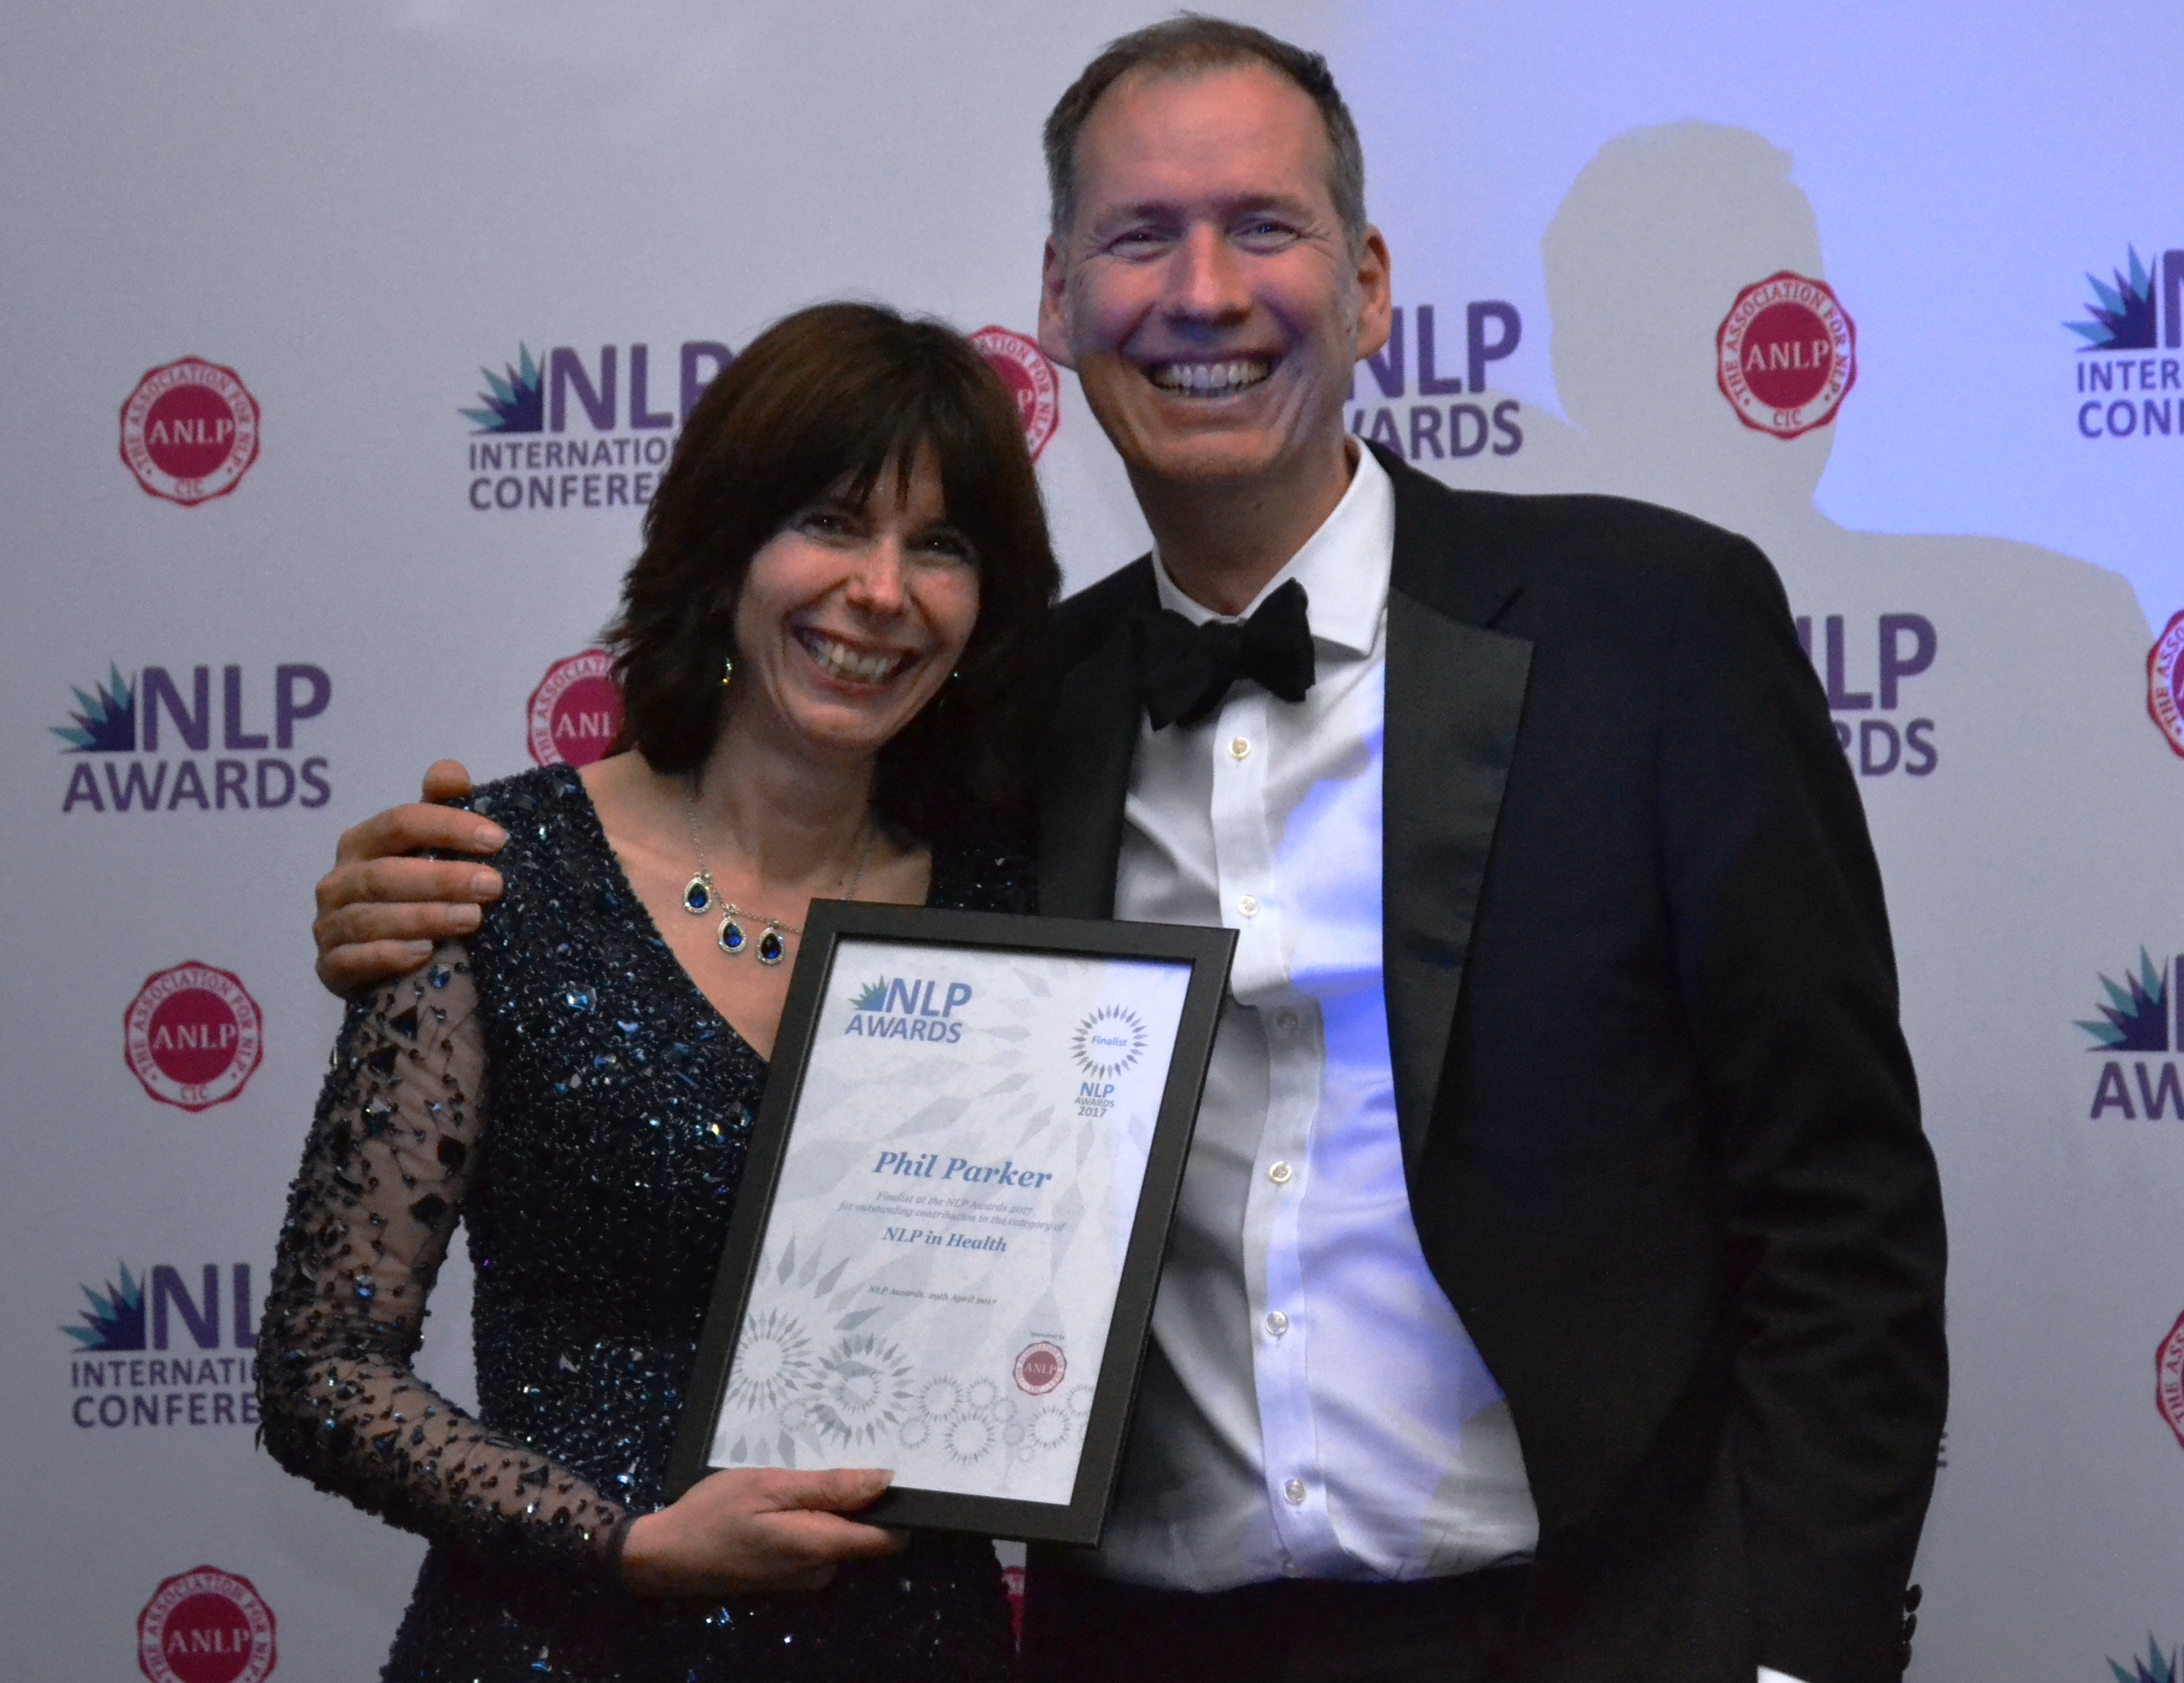 Phil Parker & Karen Moxom NLP Awards